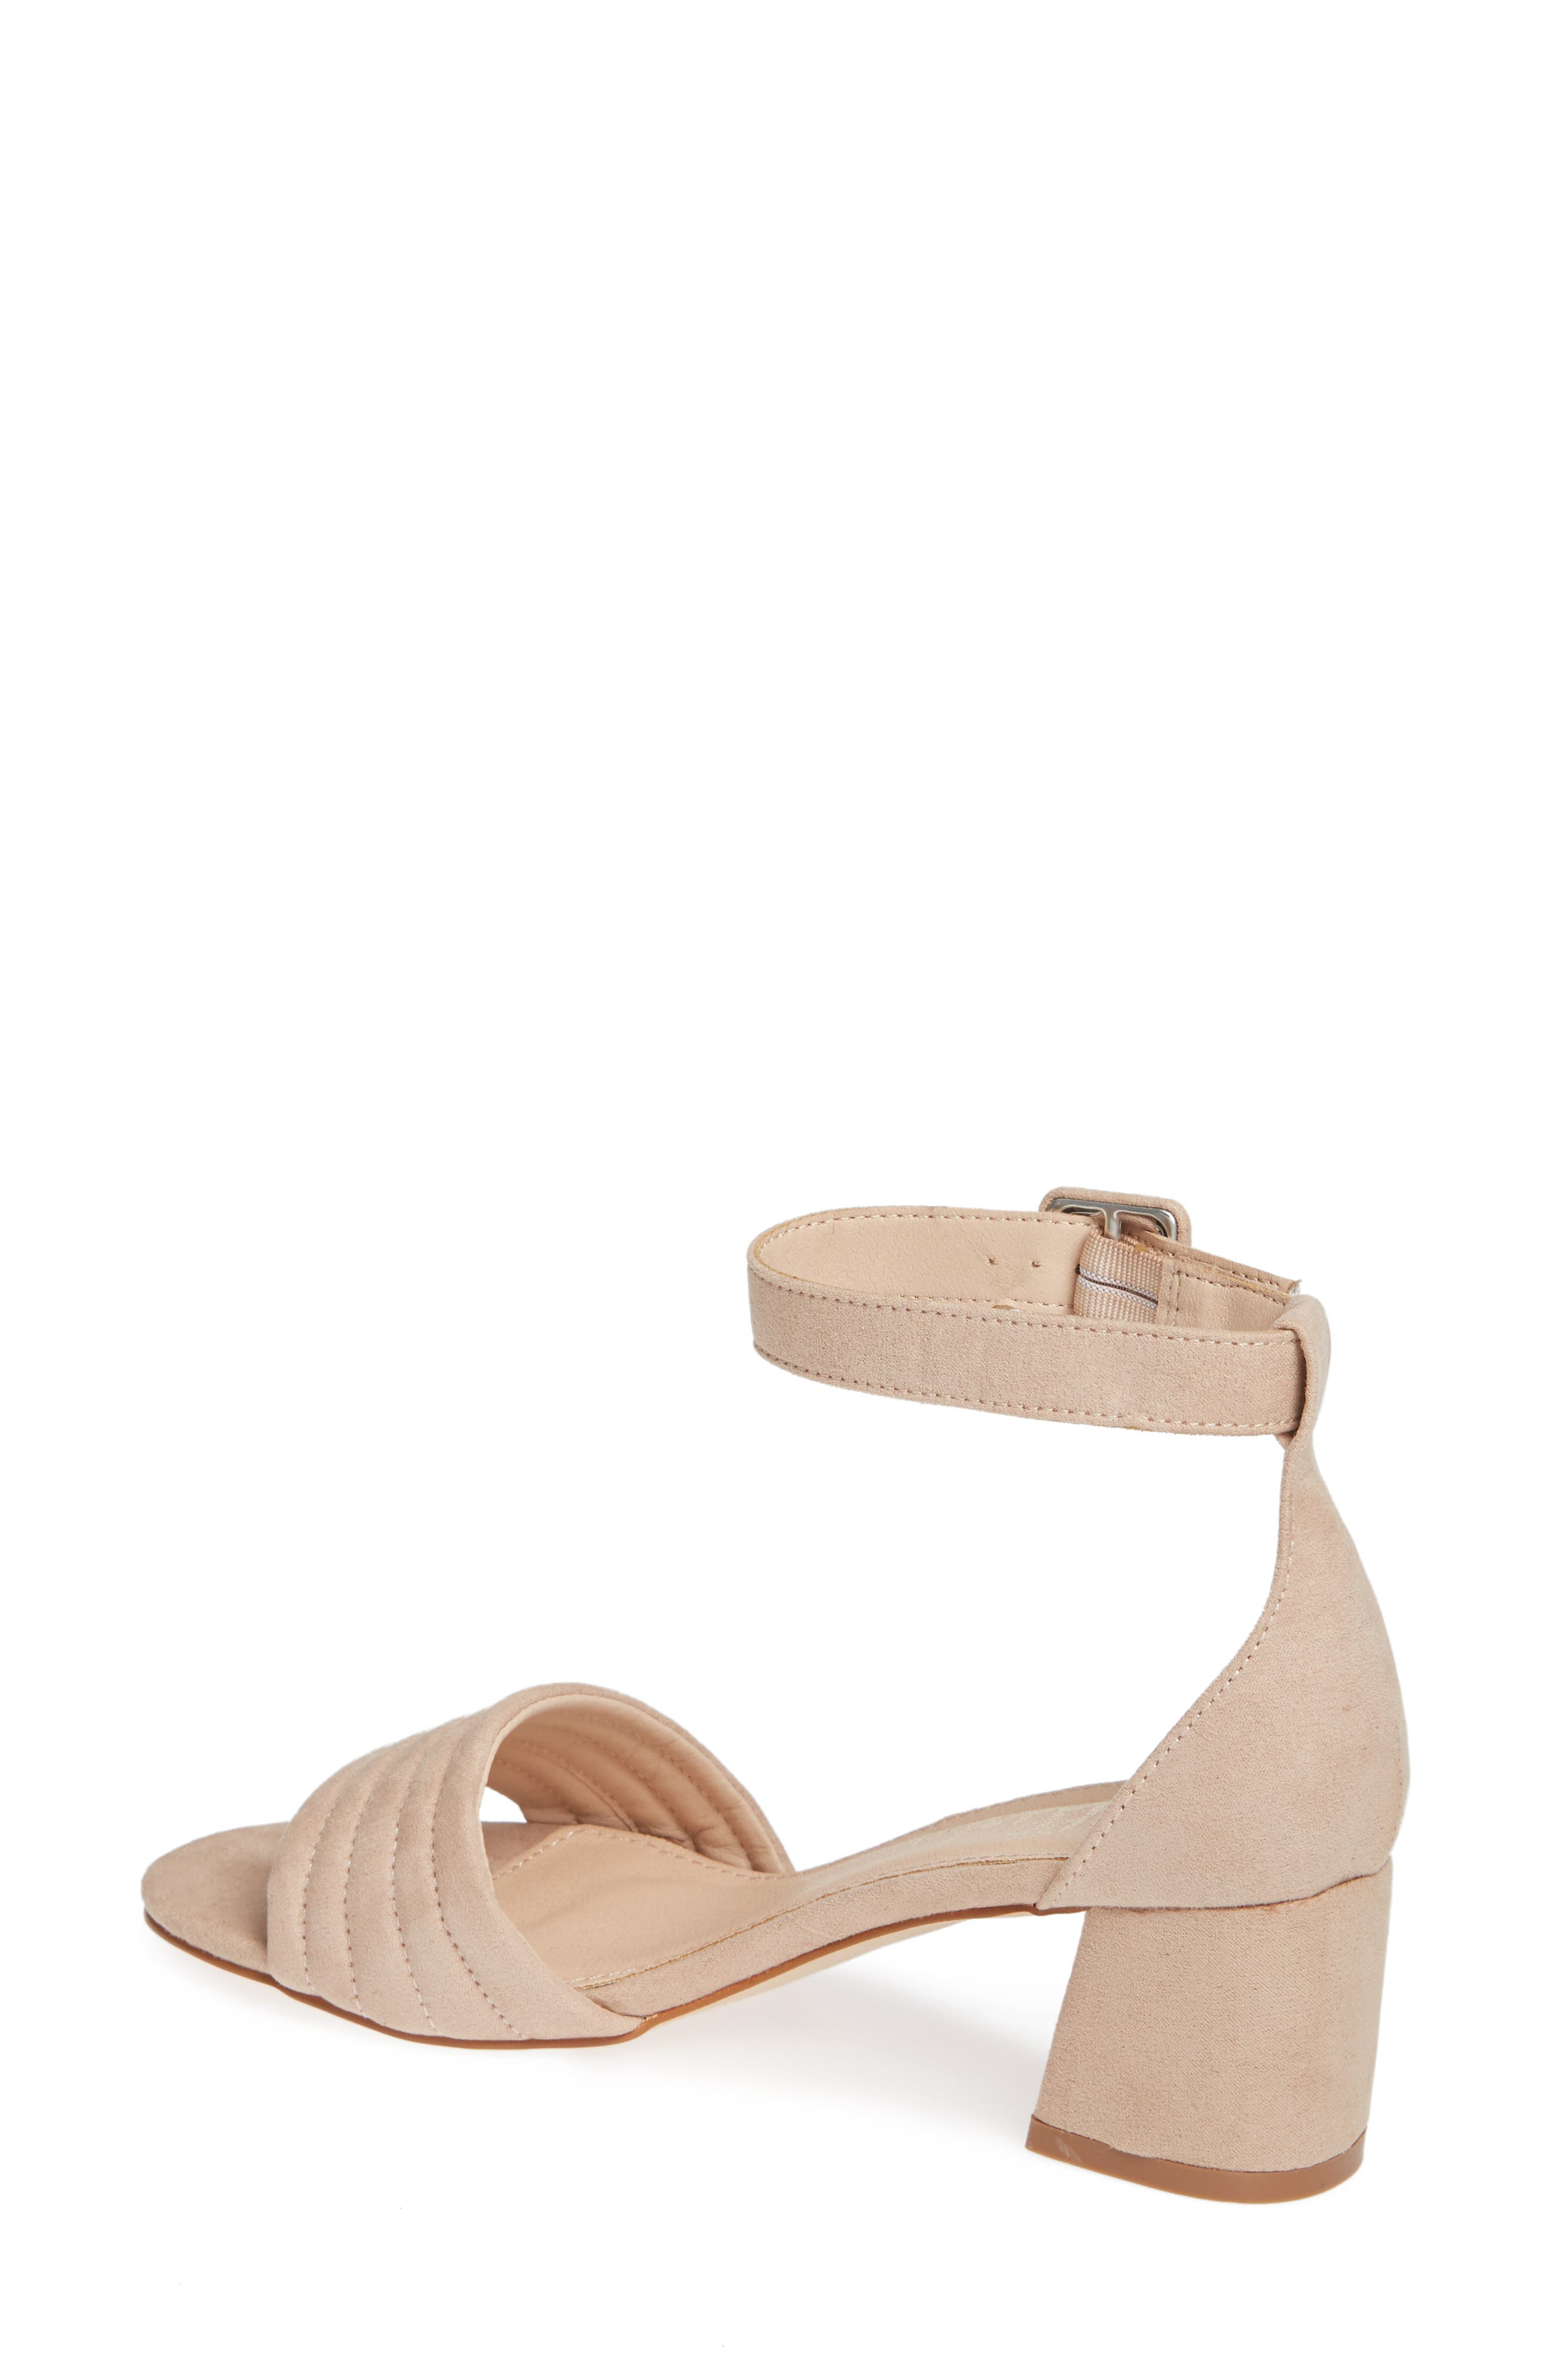 CALLISTO, Puffye Ankle Strap Sandal, Alternate thumbnail 2, color, BLUSH SUEDE SYNTHETIC